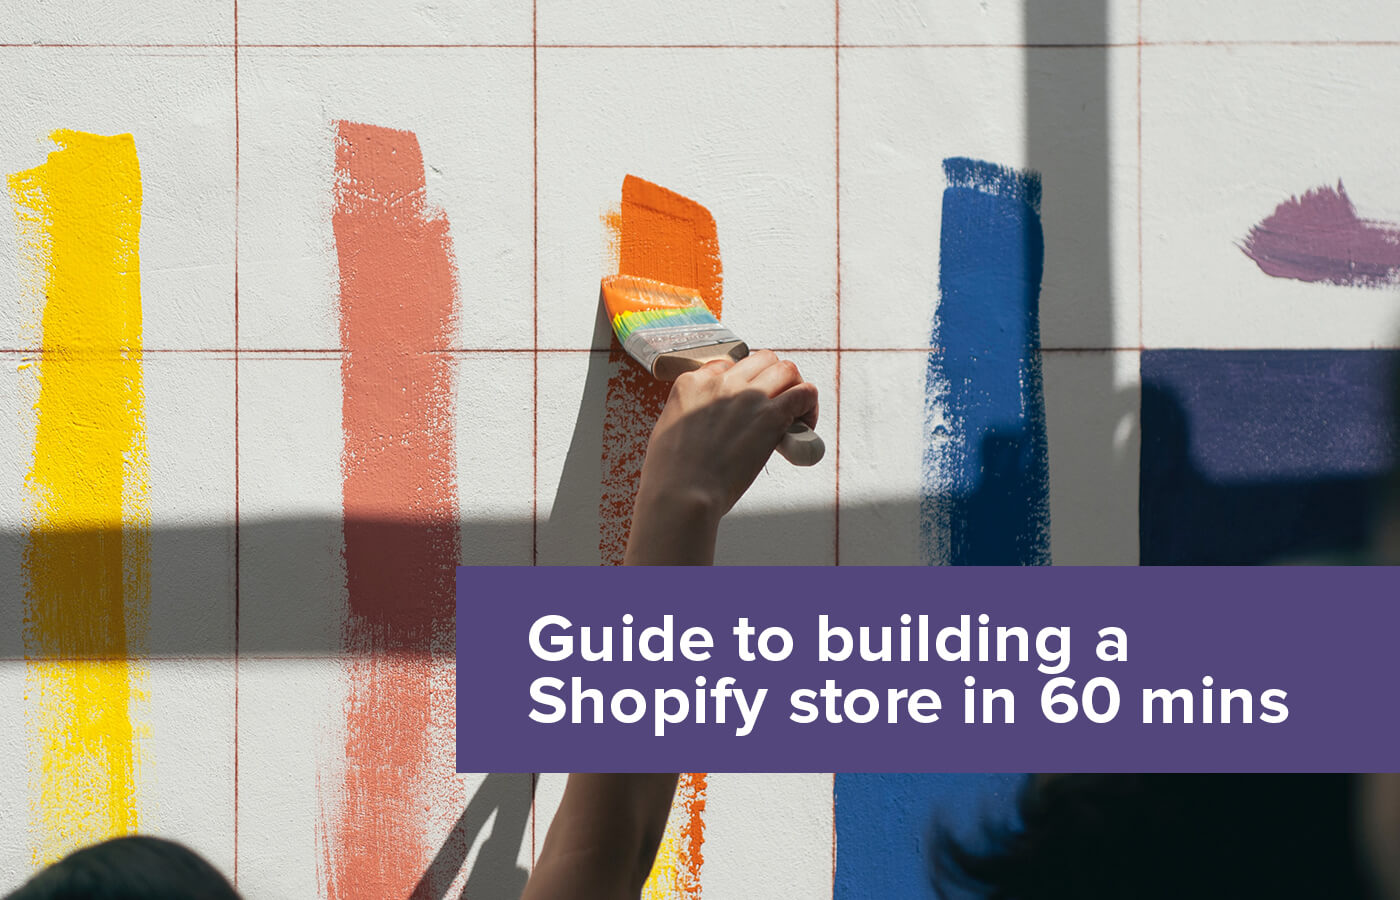 How to quickly set up a Shopify store for local delivery during COVID-19